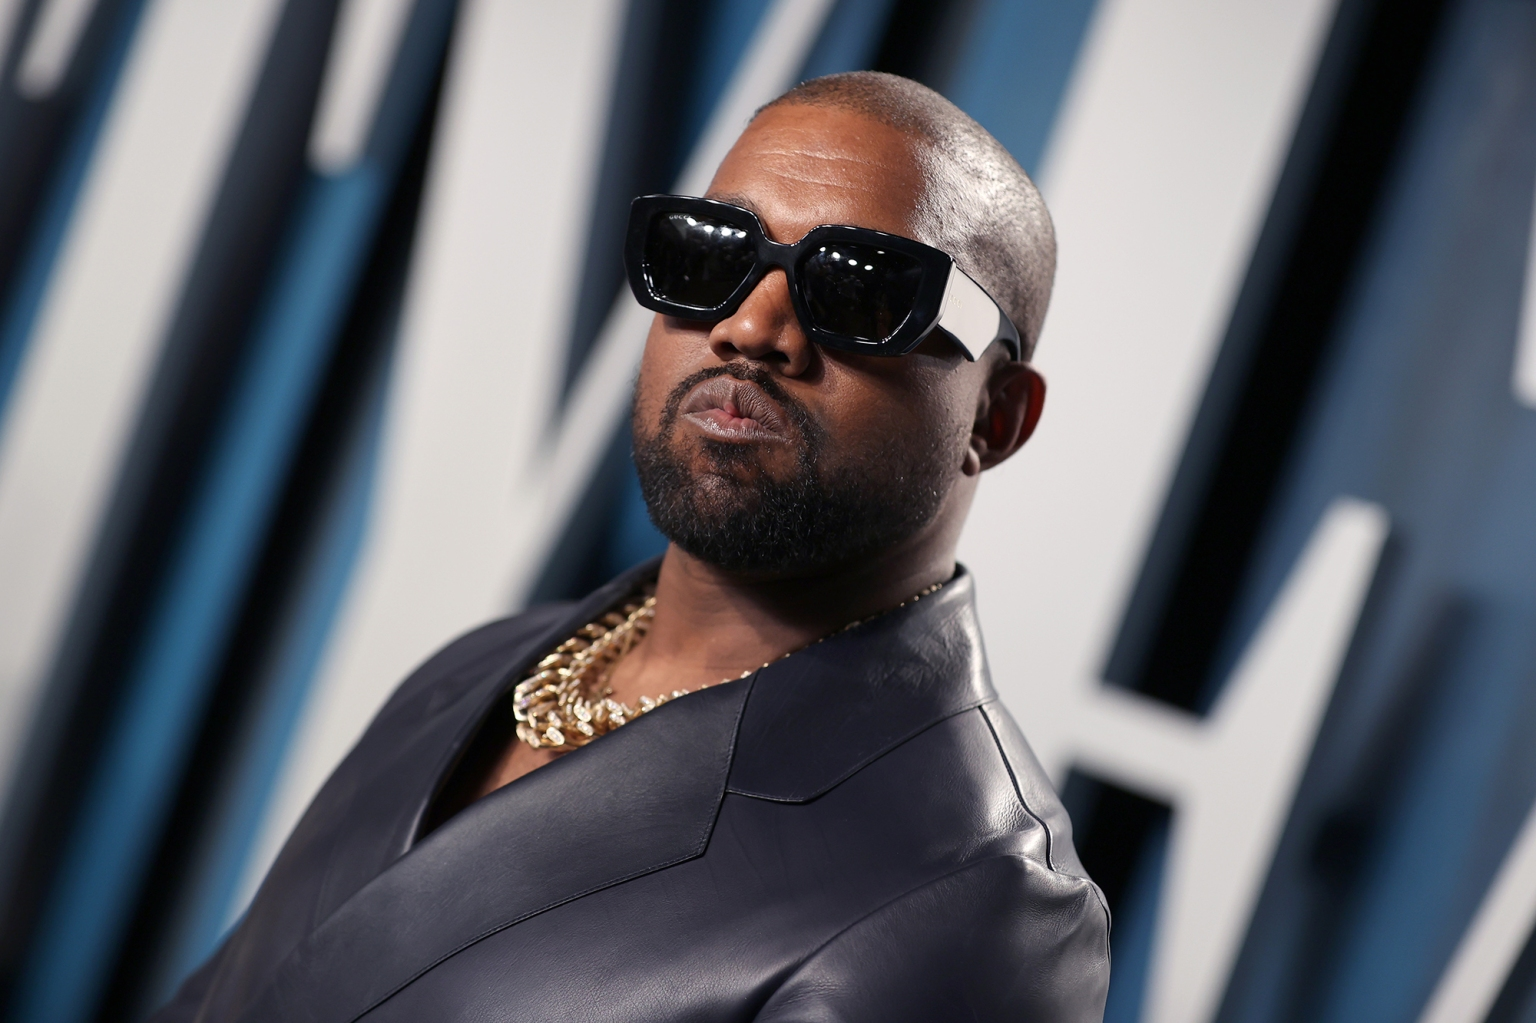 Gap will sell Kanye West's Yeezy line